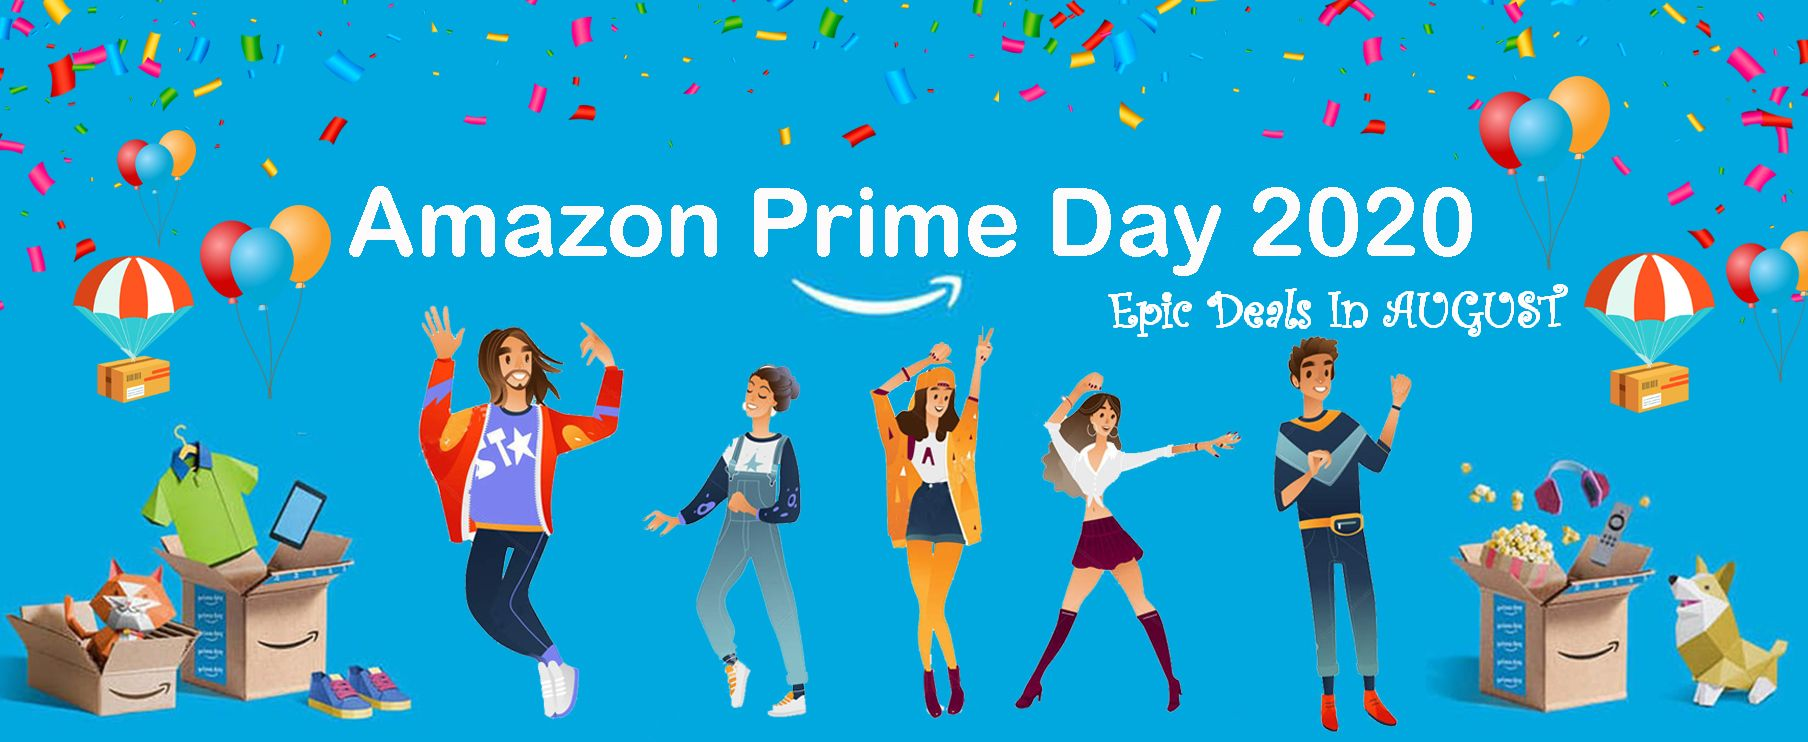 Amazon Prime day 2020 massive shopping holiday when is the next amazon prime day 2020 ? date postponed to August.